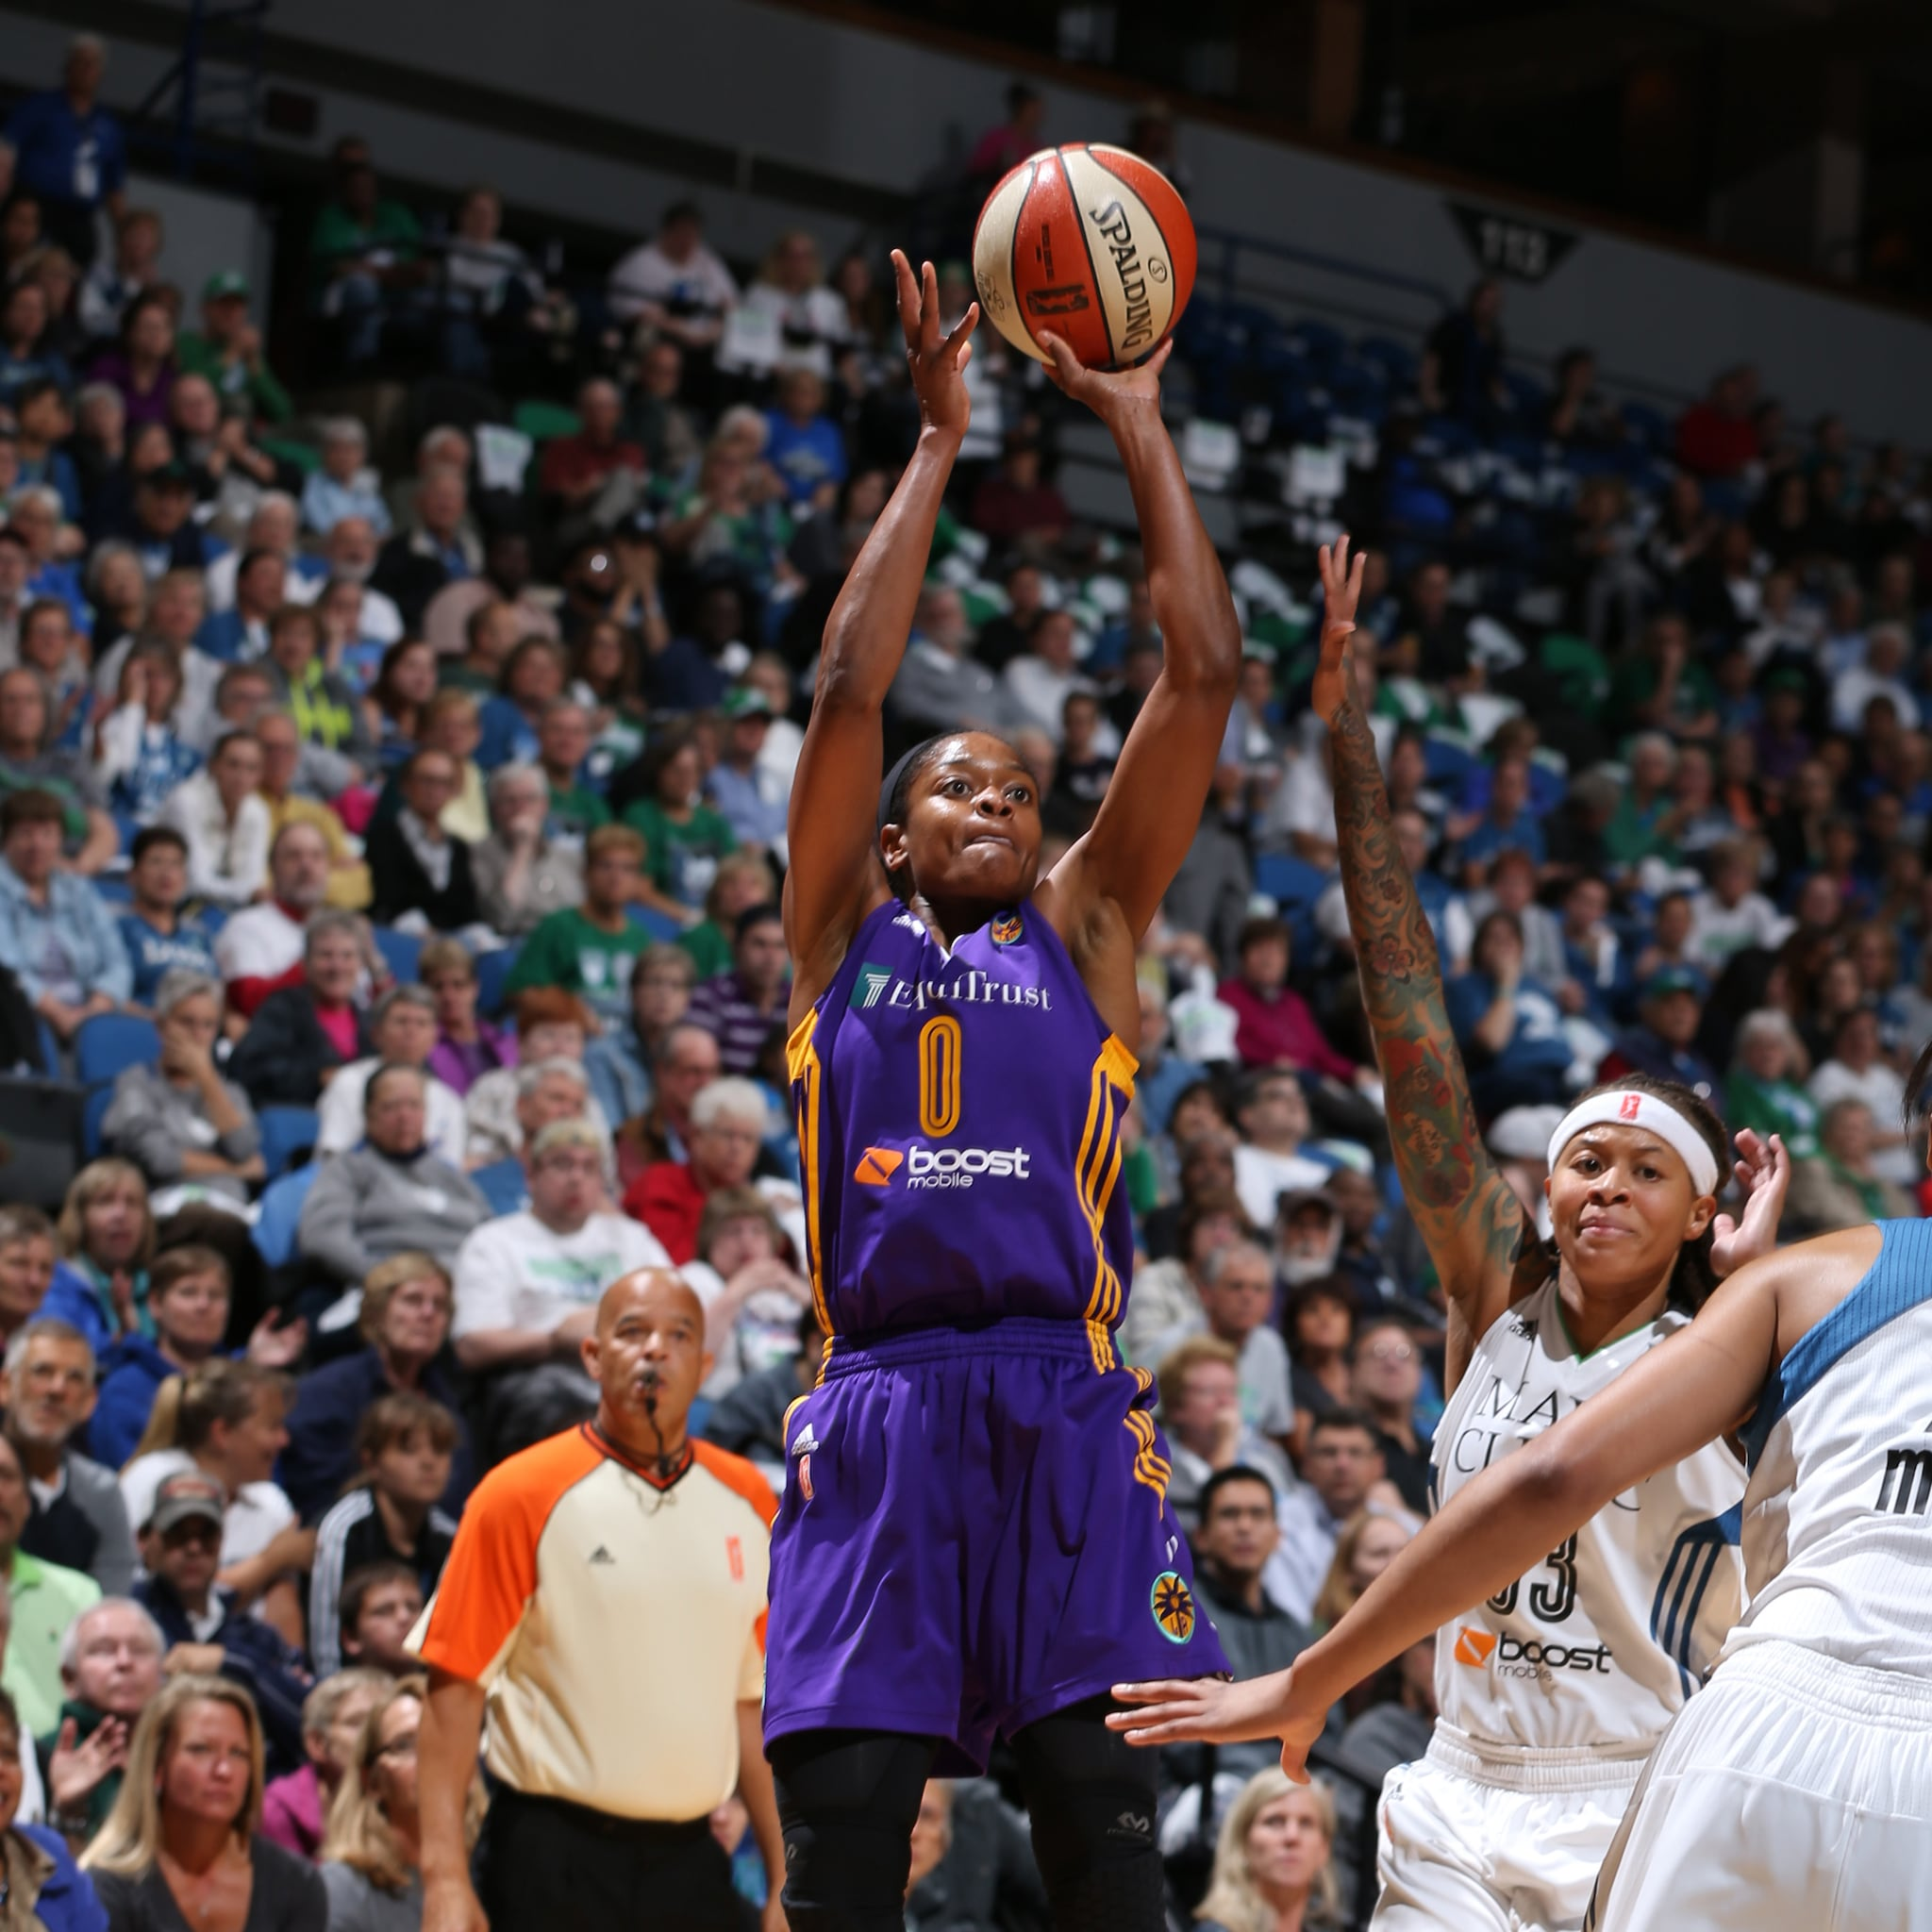 MINNEAPOLIS, MN - SEPTEMBER 18:  Alana Beard #0 of the Los Angeles Sparks shoots the ball against the Minnesota Lynx during Game 1 of the 2015 WNBA Western Conference Semifinal on September 18, 2015 at Target Center in Minneapolis, Minnesota.  NOTE TO USER: User expressly acknowledges and agrees that, by downloading and or using this Photograph, user is consenting to the terms and conditions of the Getty Images License Agreement. Mandatory Copyright Notice: Copyright 2015 NBAE (Photo by David Sherman/NBAE via Getty Images)